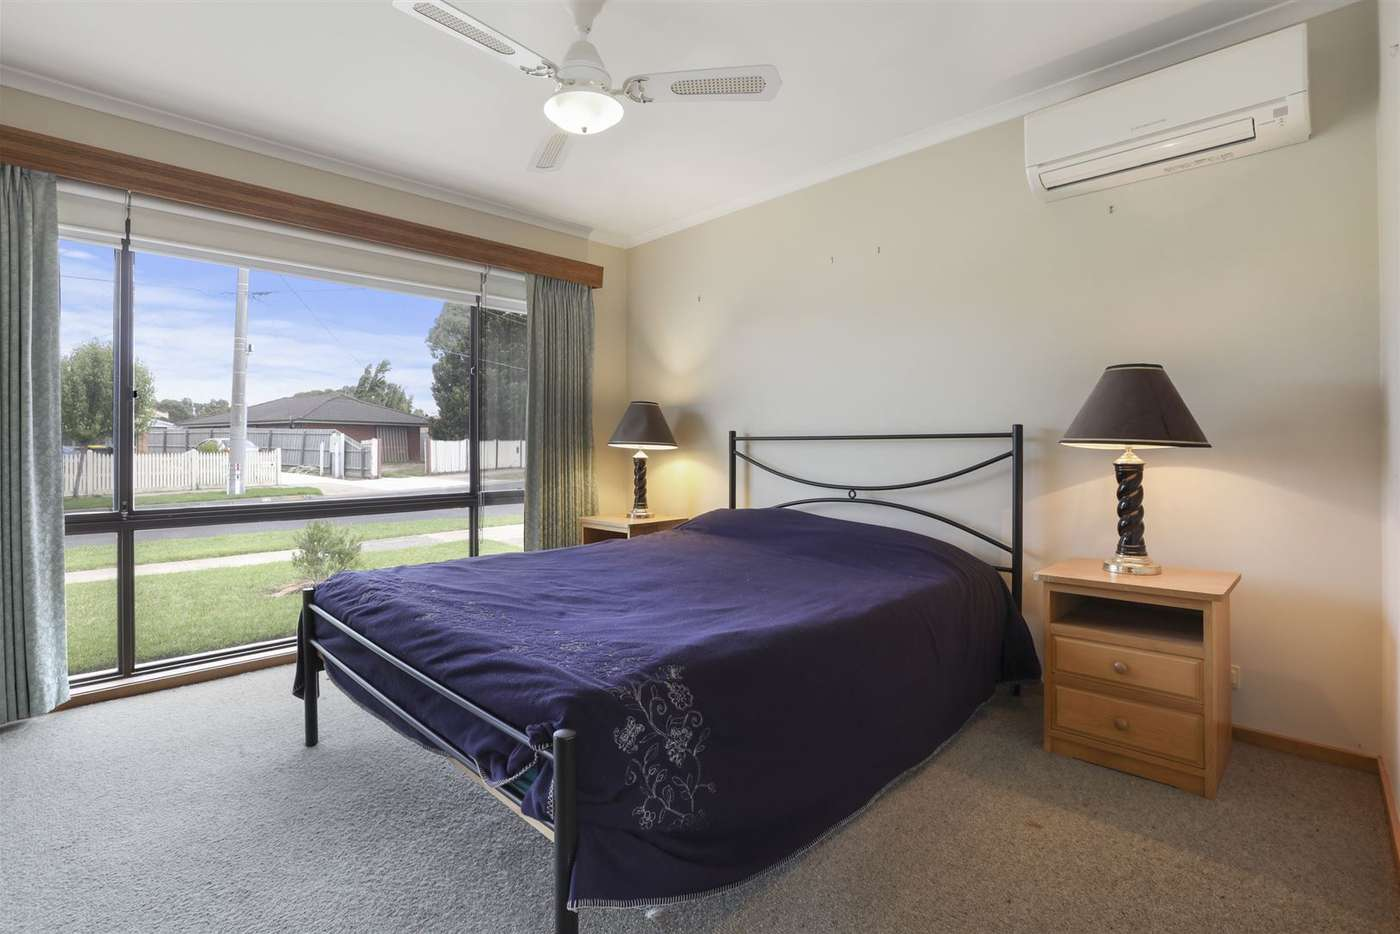 Fifth view of Homely house listing, 1/15 Orbit Drive, Whittington VIC 3219